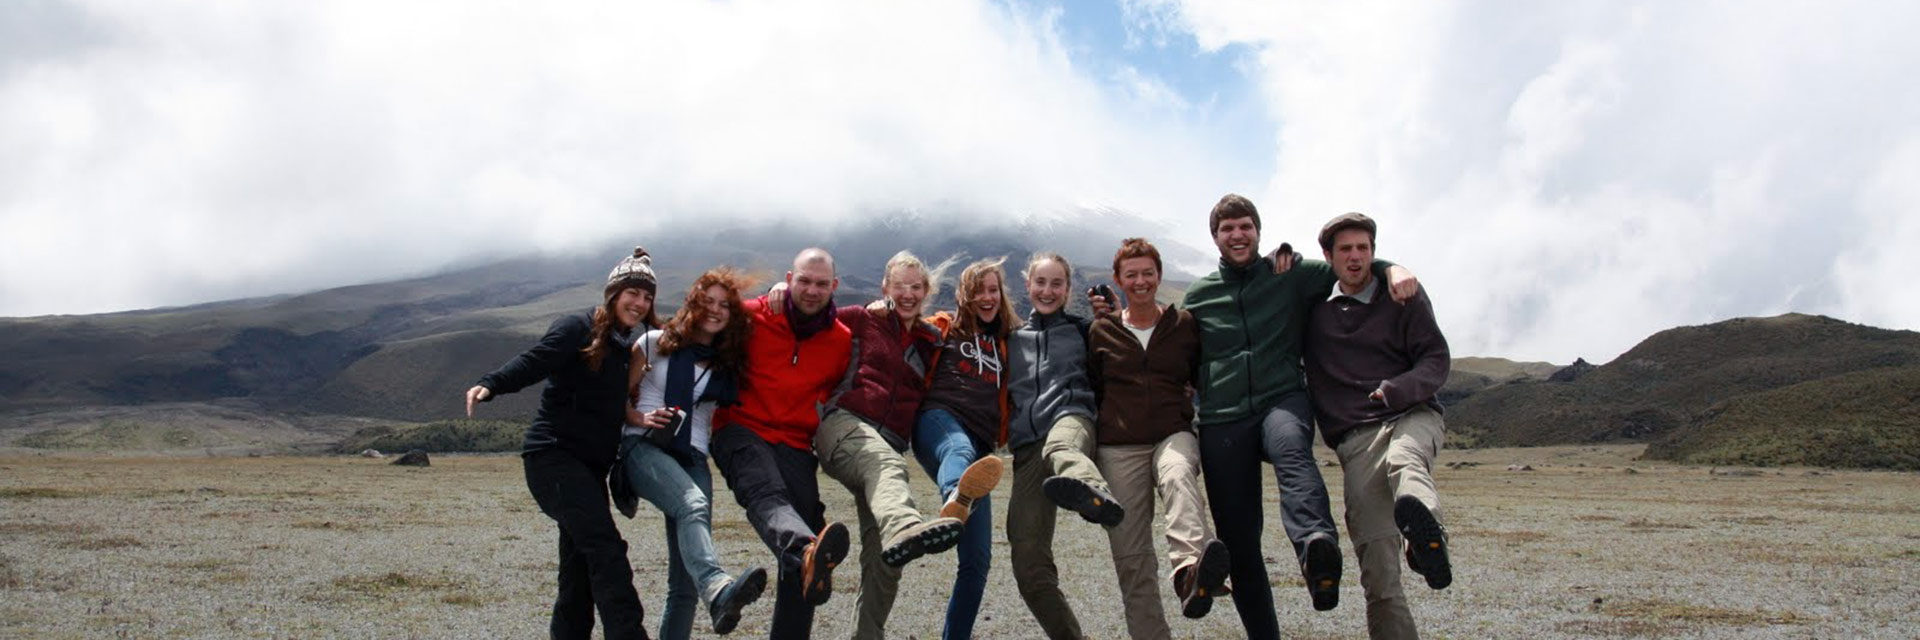 Spanish students on Cotopaxi - © Janine Reichel